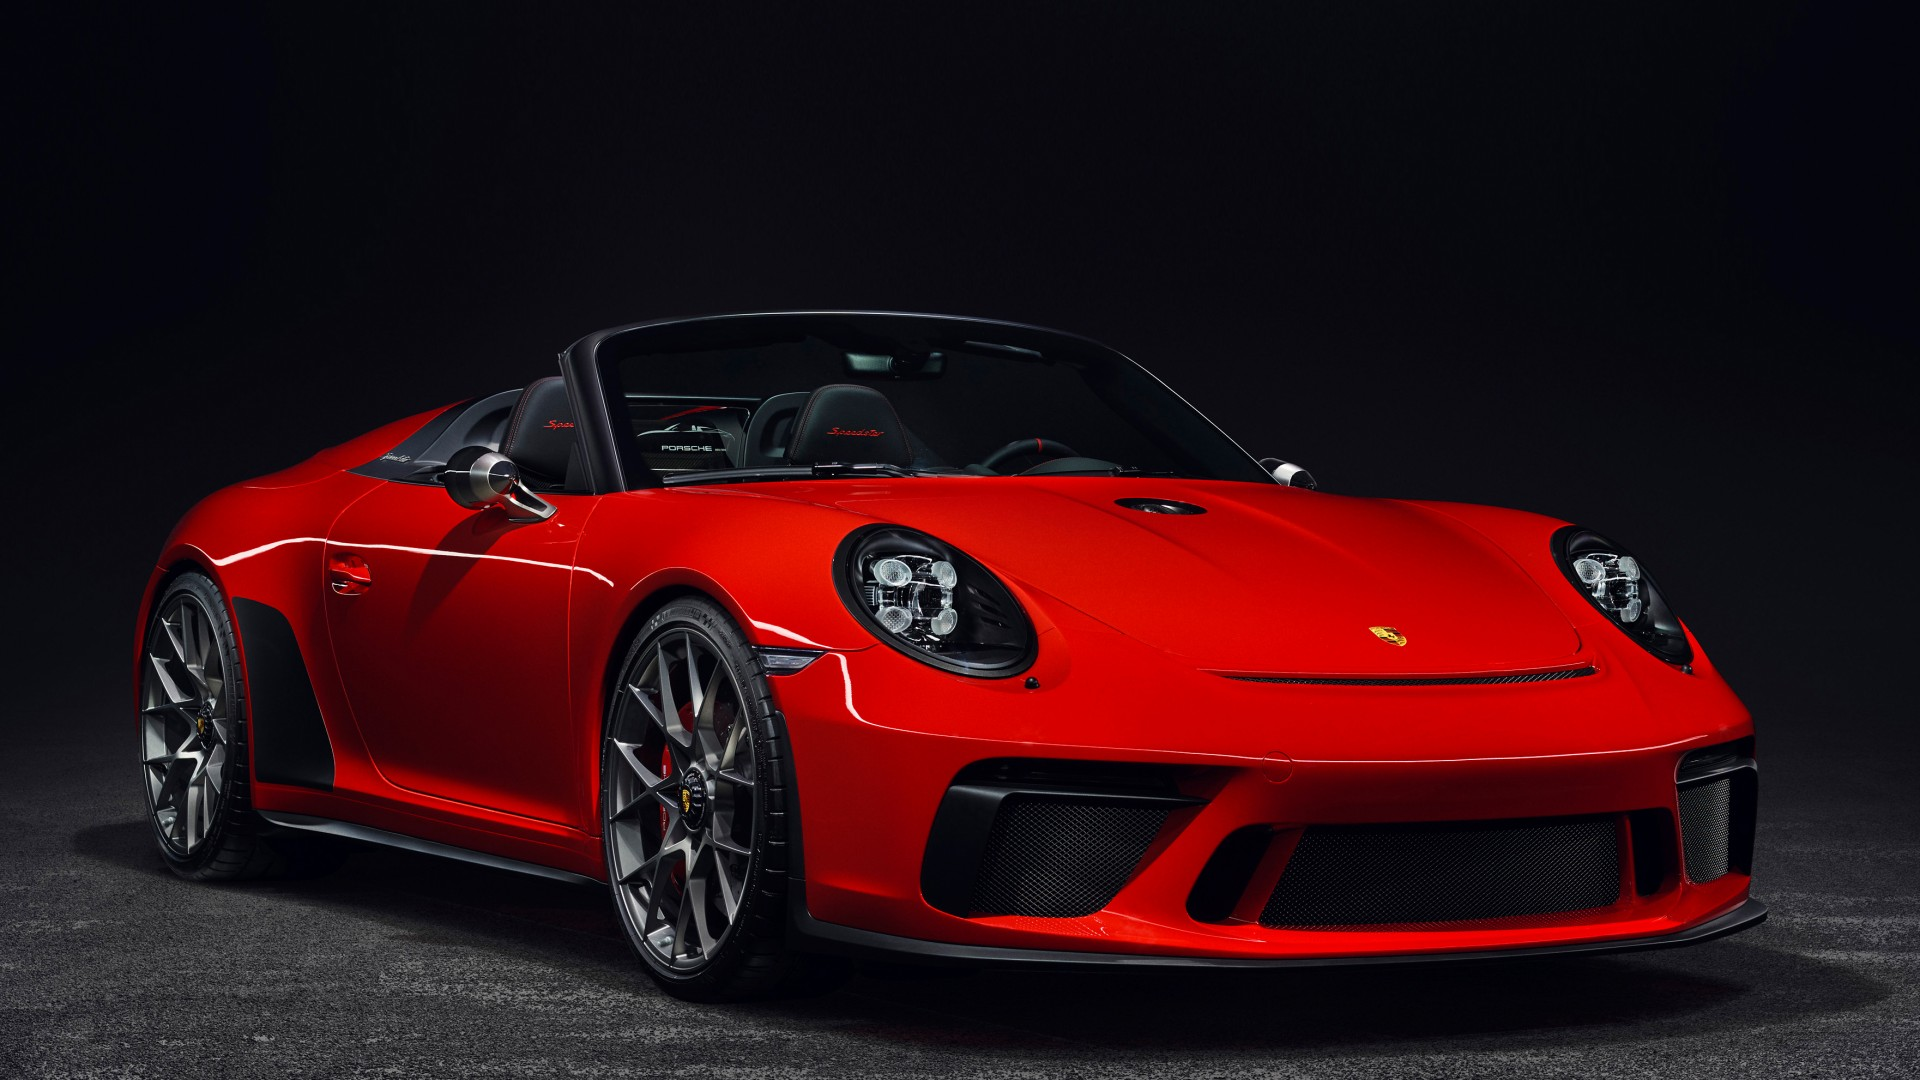 Wallpaper Porsche 911 Speedster 2019 Cars 4k Cars